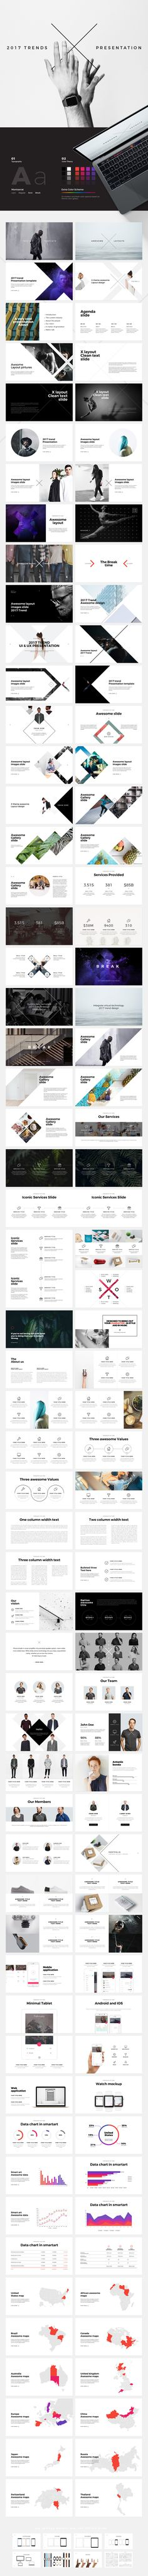 "Check out this @Behance project: ""X - FREE POWERPOINT & KEYNOTE TEMPLATE"" https://www.behance.net/gallery/48970139/X-FREE-POWERPOINT-KEYNOTE-TEMPLATE"